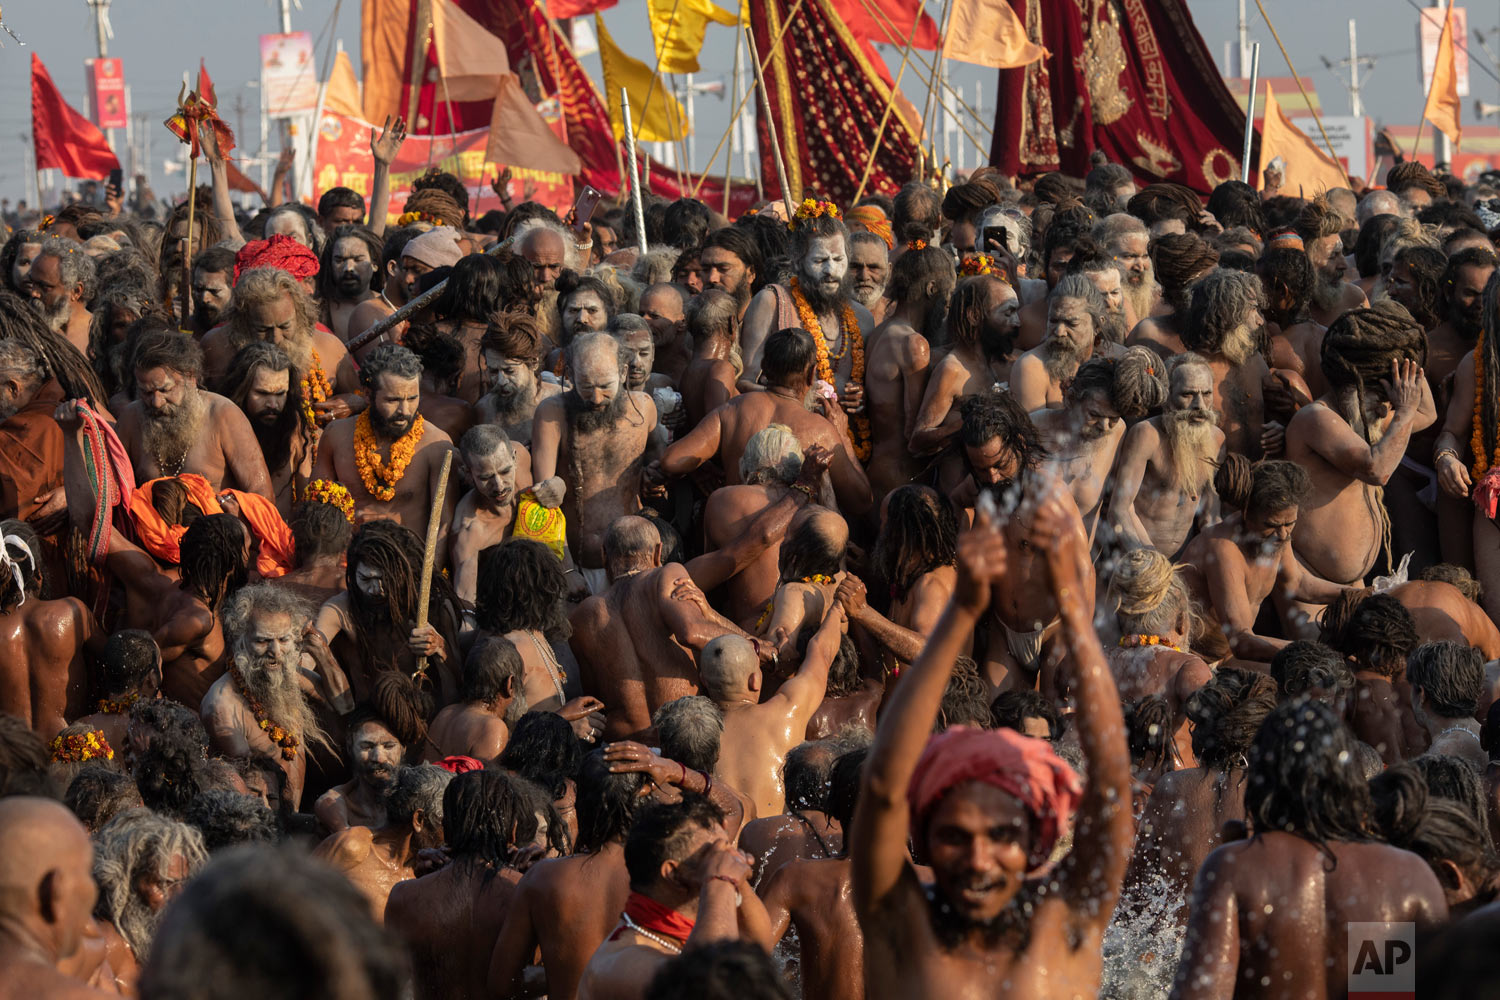 Hindu holy men, take a holy dip at Sangam, the confluence of the rivers Ganges, Yamuna and mythical Saraswati, during the Kumbh Mela festival in Prayagraj, India, Jan. 15, 2019. (AP Photo/Bernat Armangue)